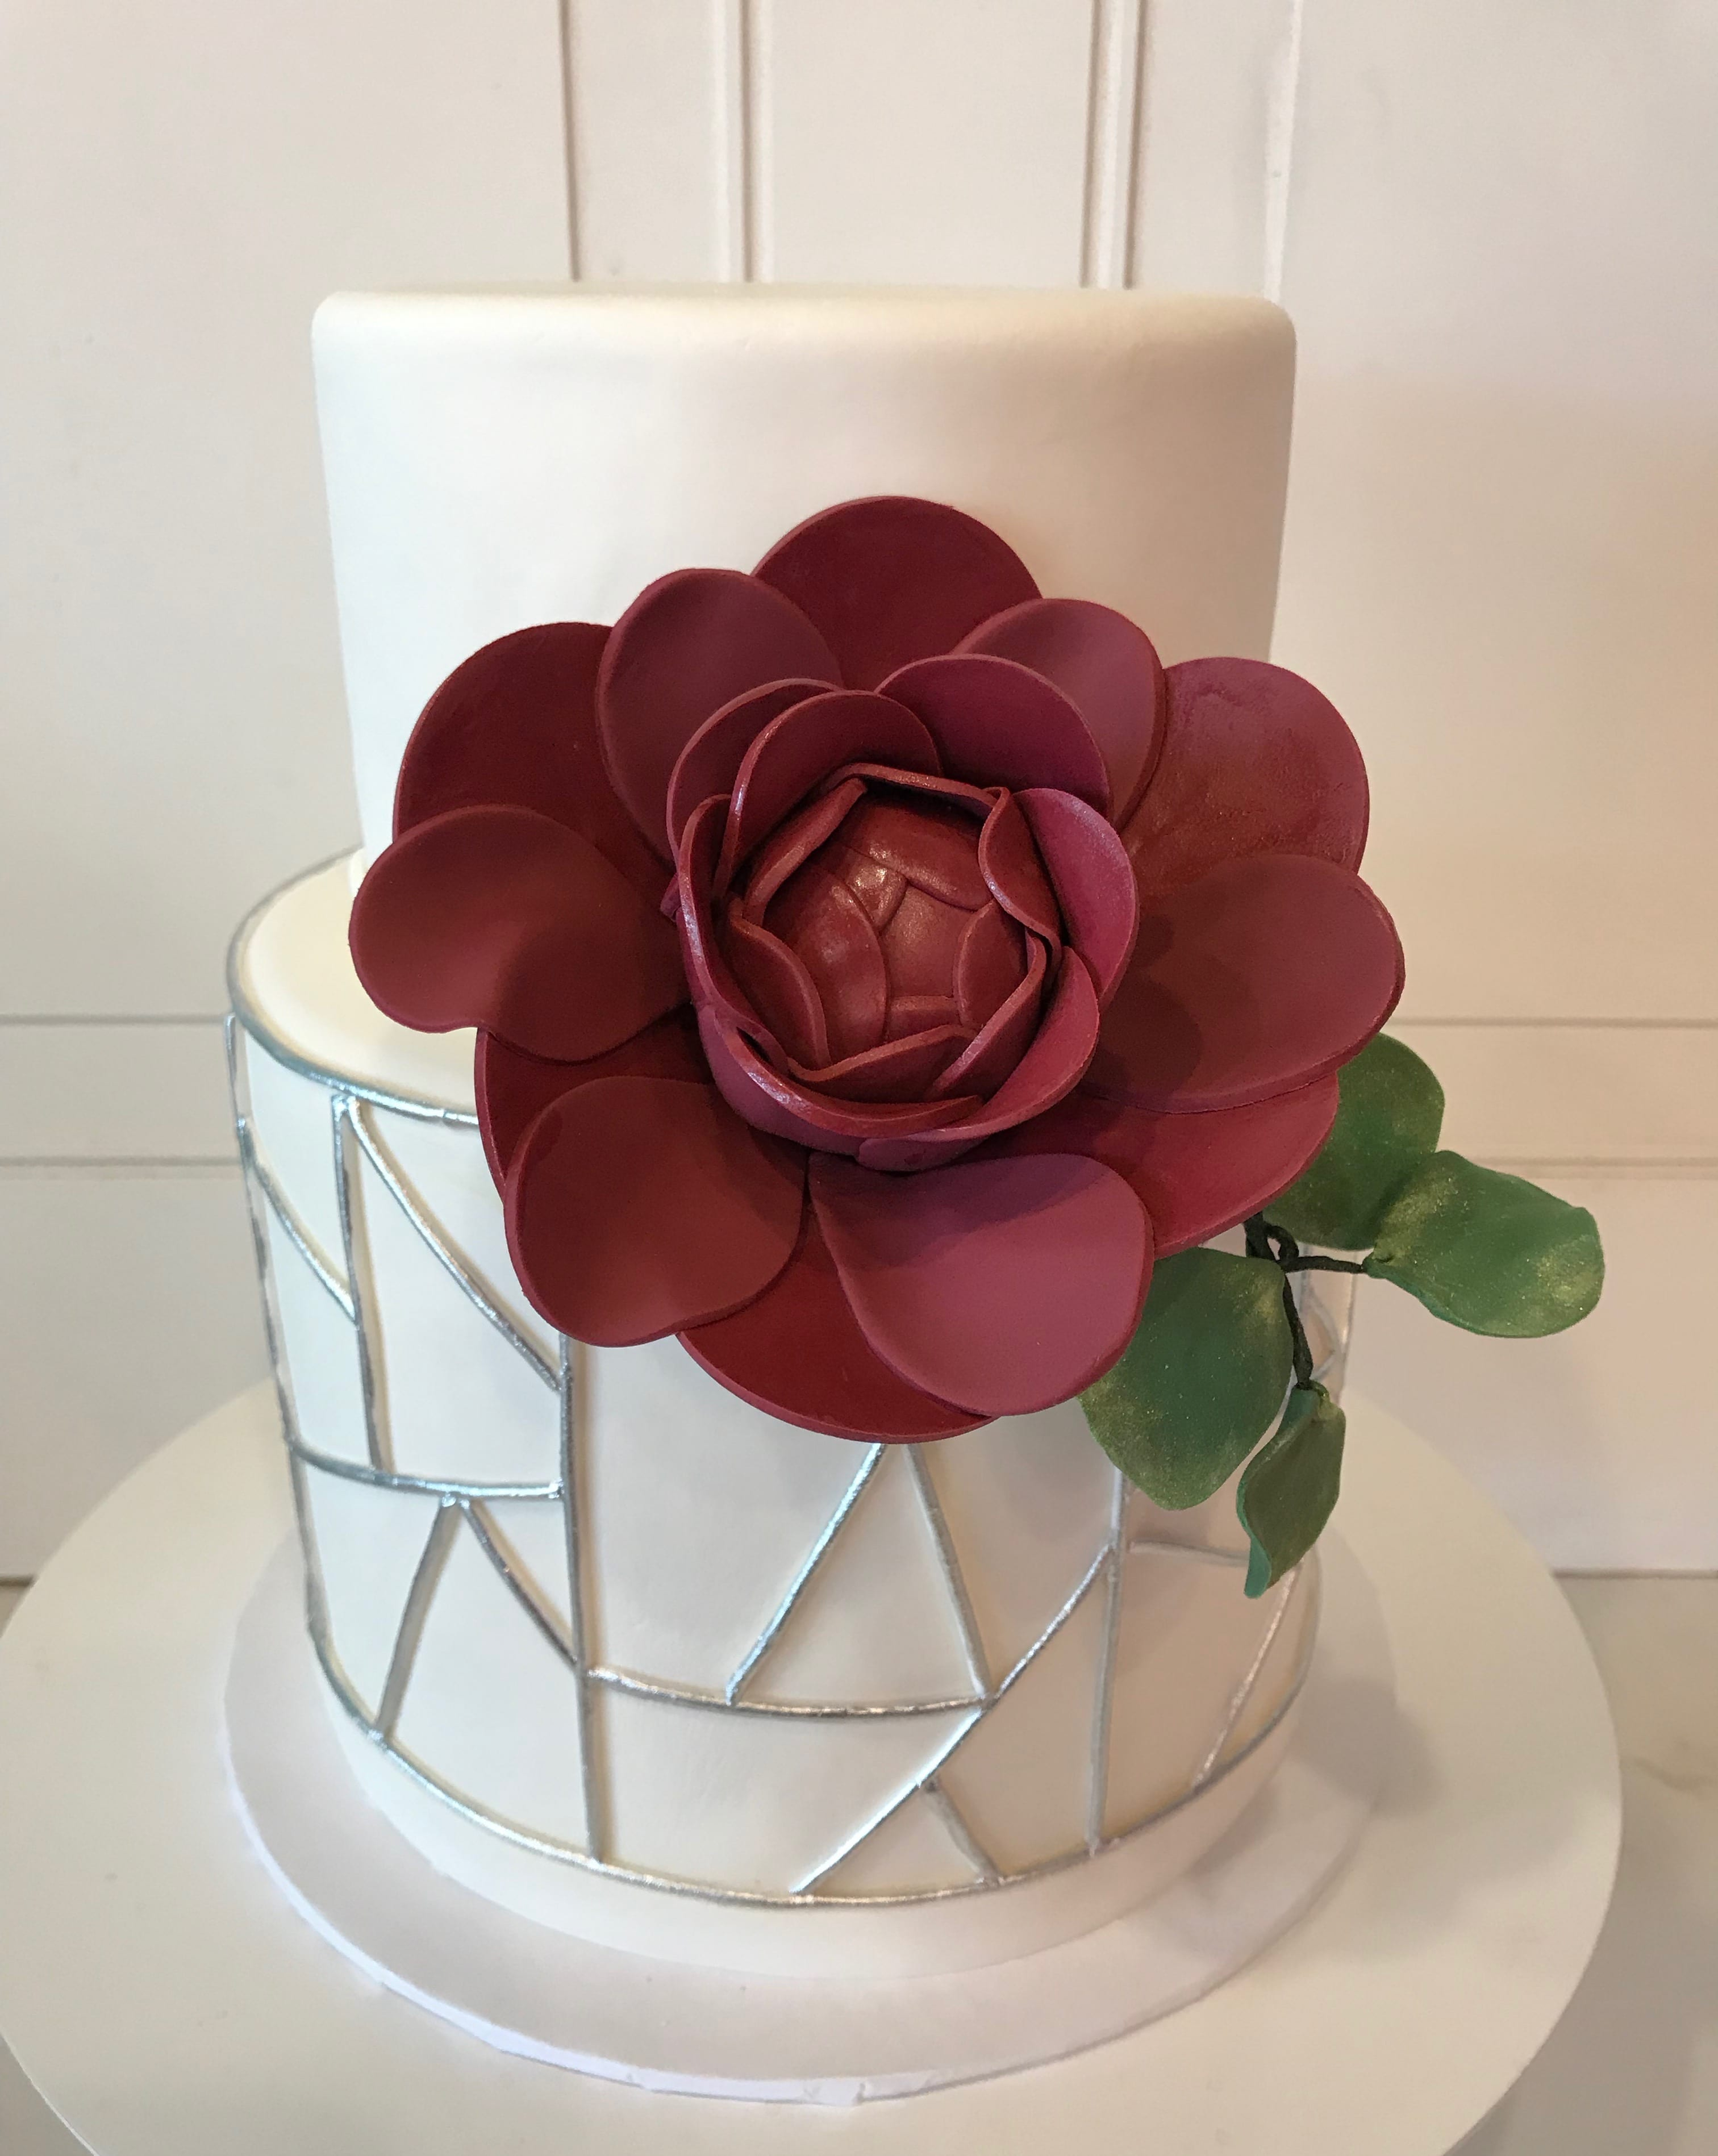 2 Tier White Cake with Silver Geometric Shapes and Burgundy Flower | 3 Sweet Girls Cakery